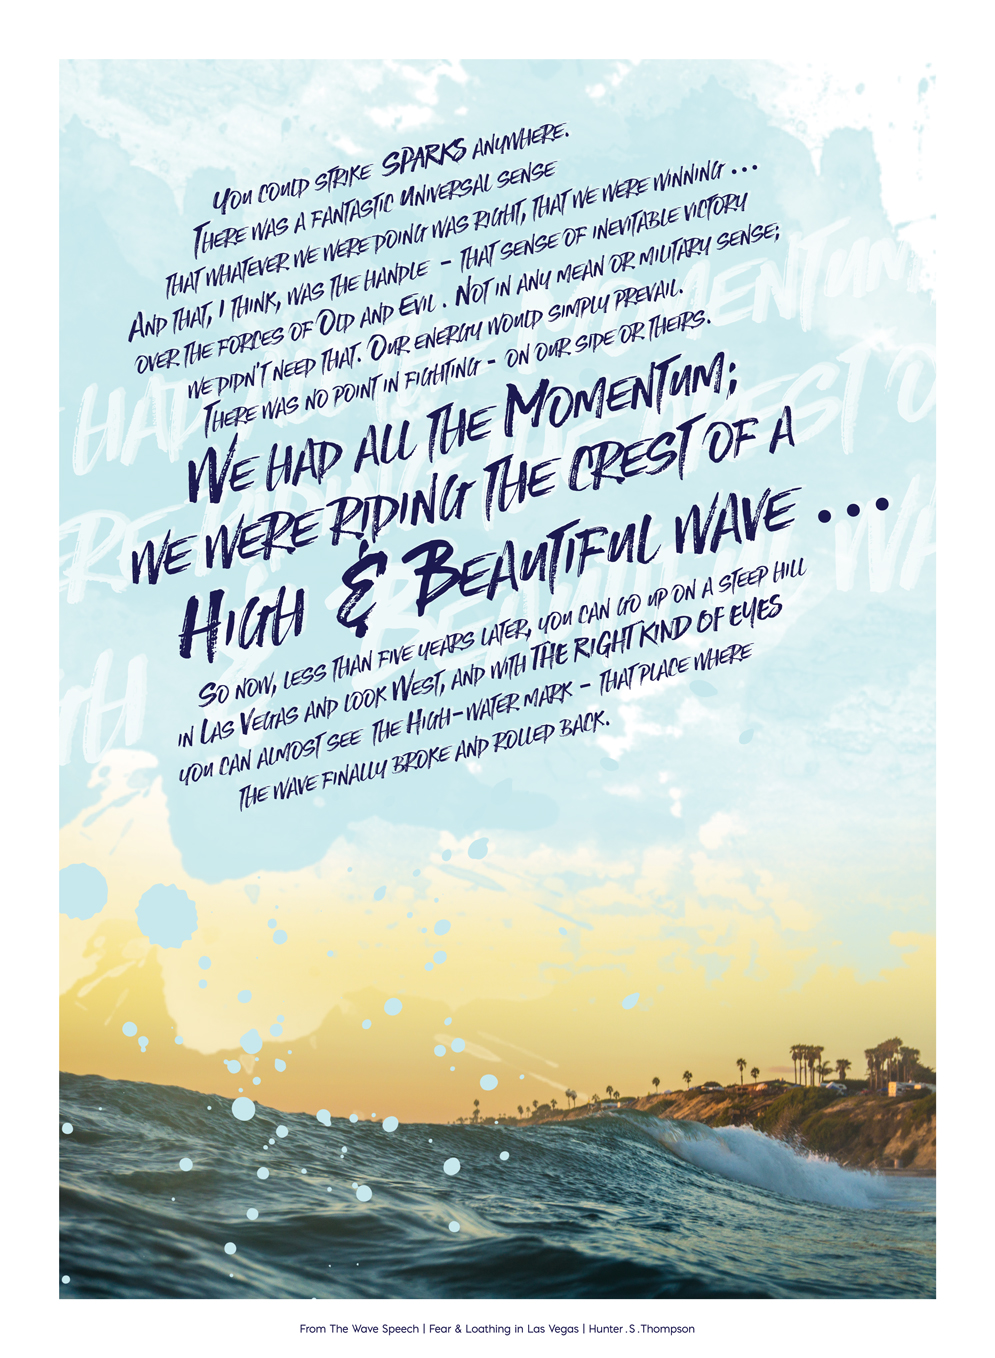 The Wave Speech | Design by Stephanie Mill | ww.stephaniemill.com